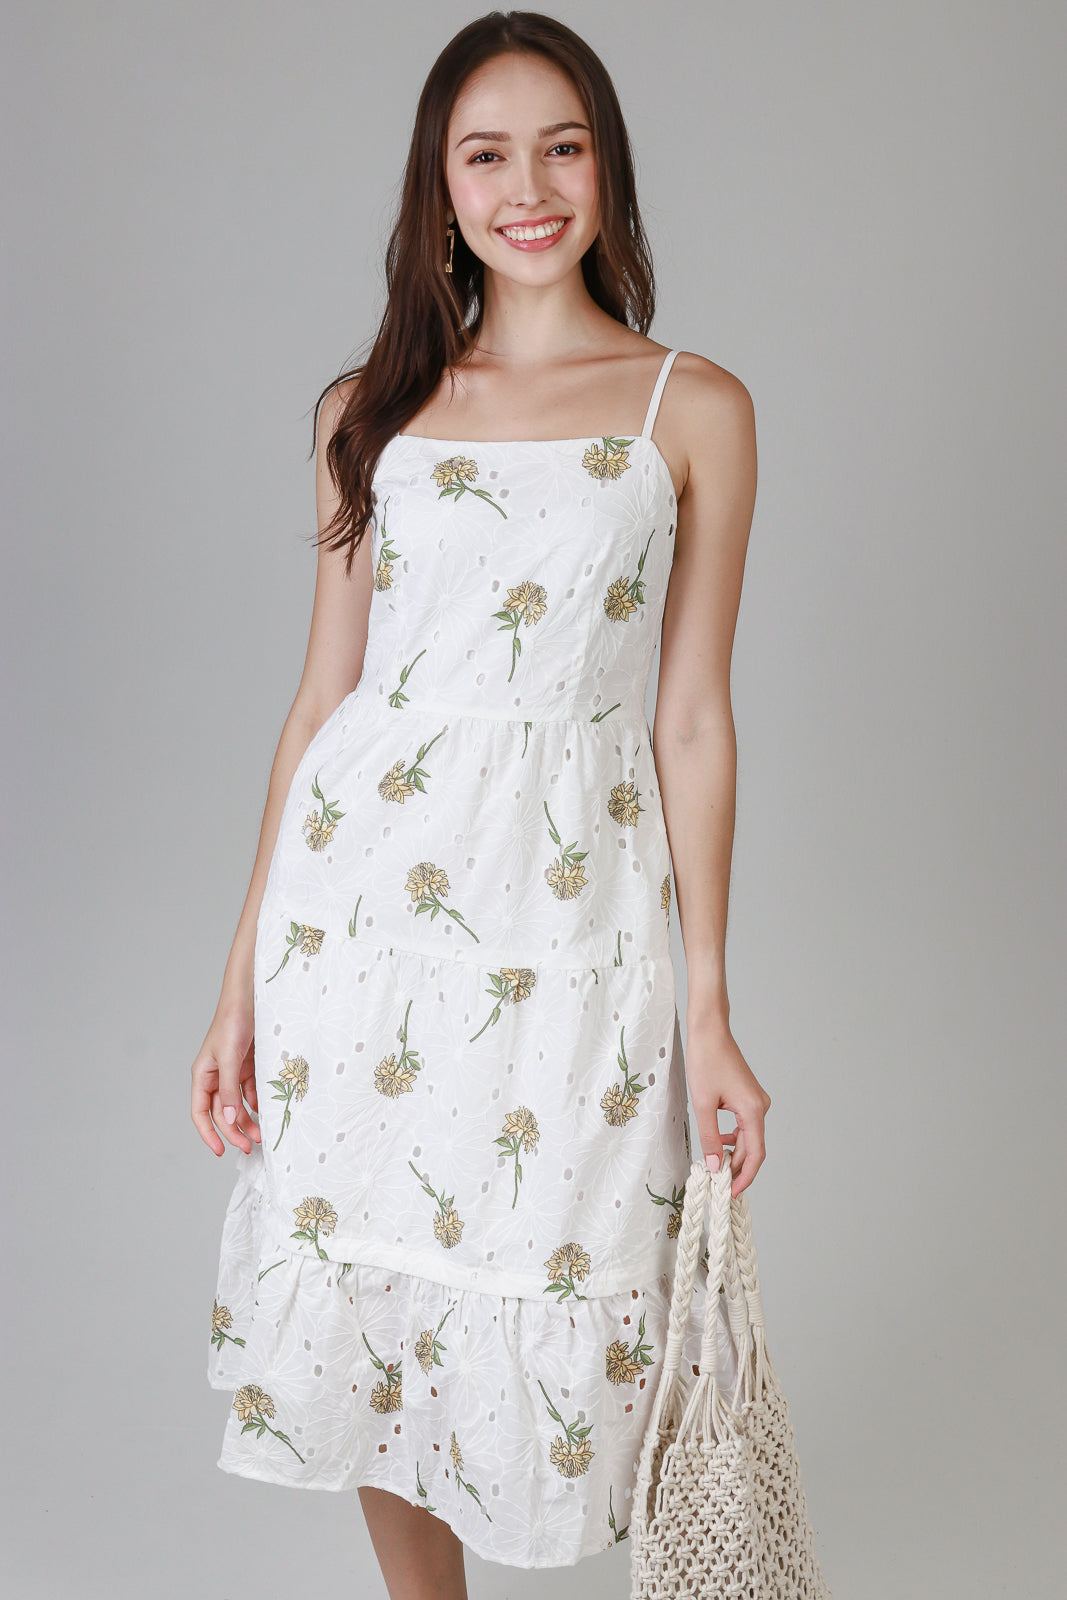 Sunshine Eyelet Midi Dress in Yellow Florals (2-Way)